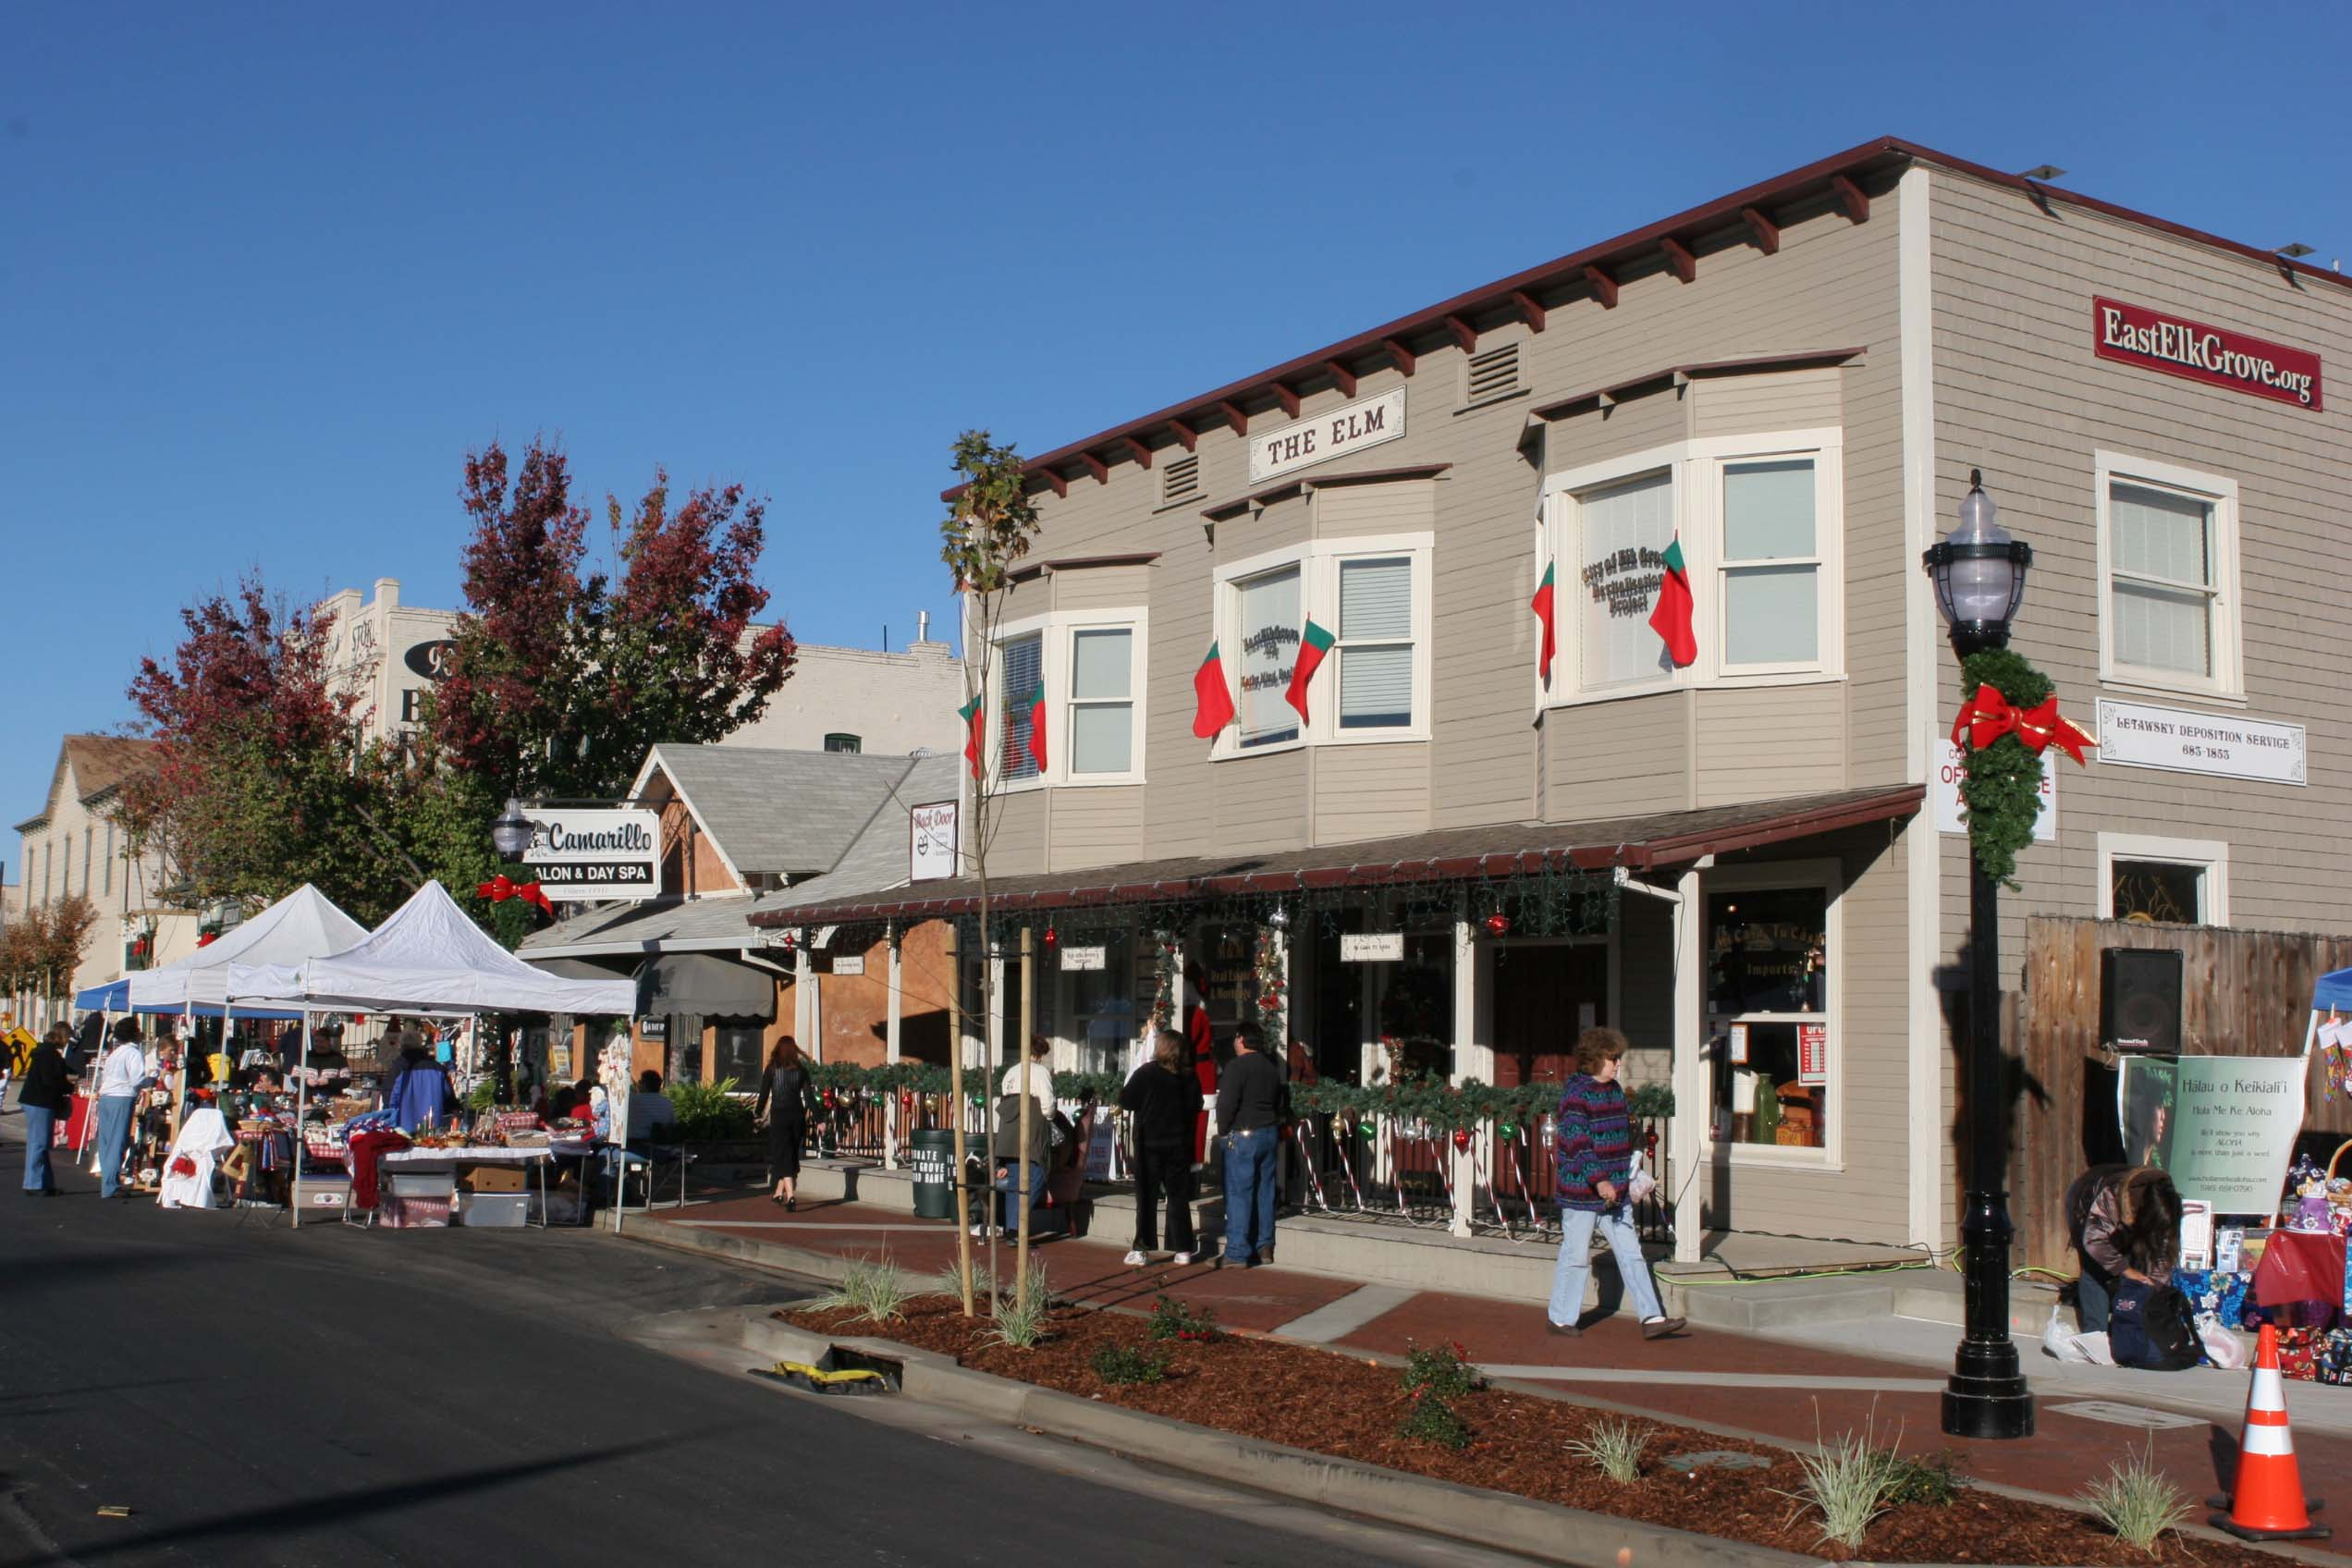 Each November, Old Town Elk Grove is closed to automobiles for the Dickens Faire, an old fashioned street fair that attracts thousands of visitors to its booths, performers, and vendors.